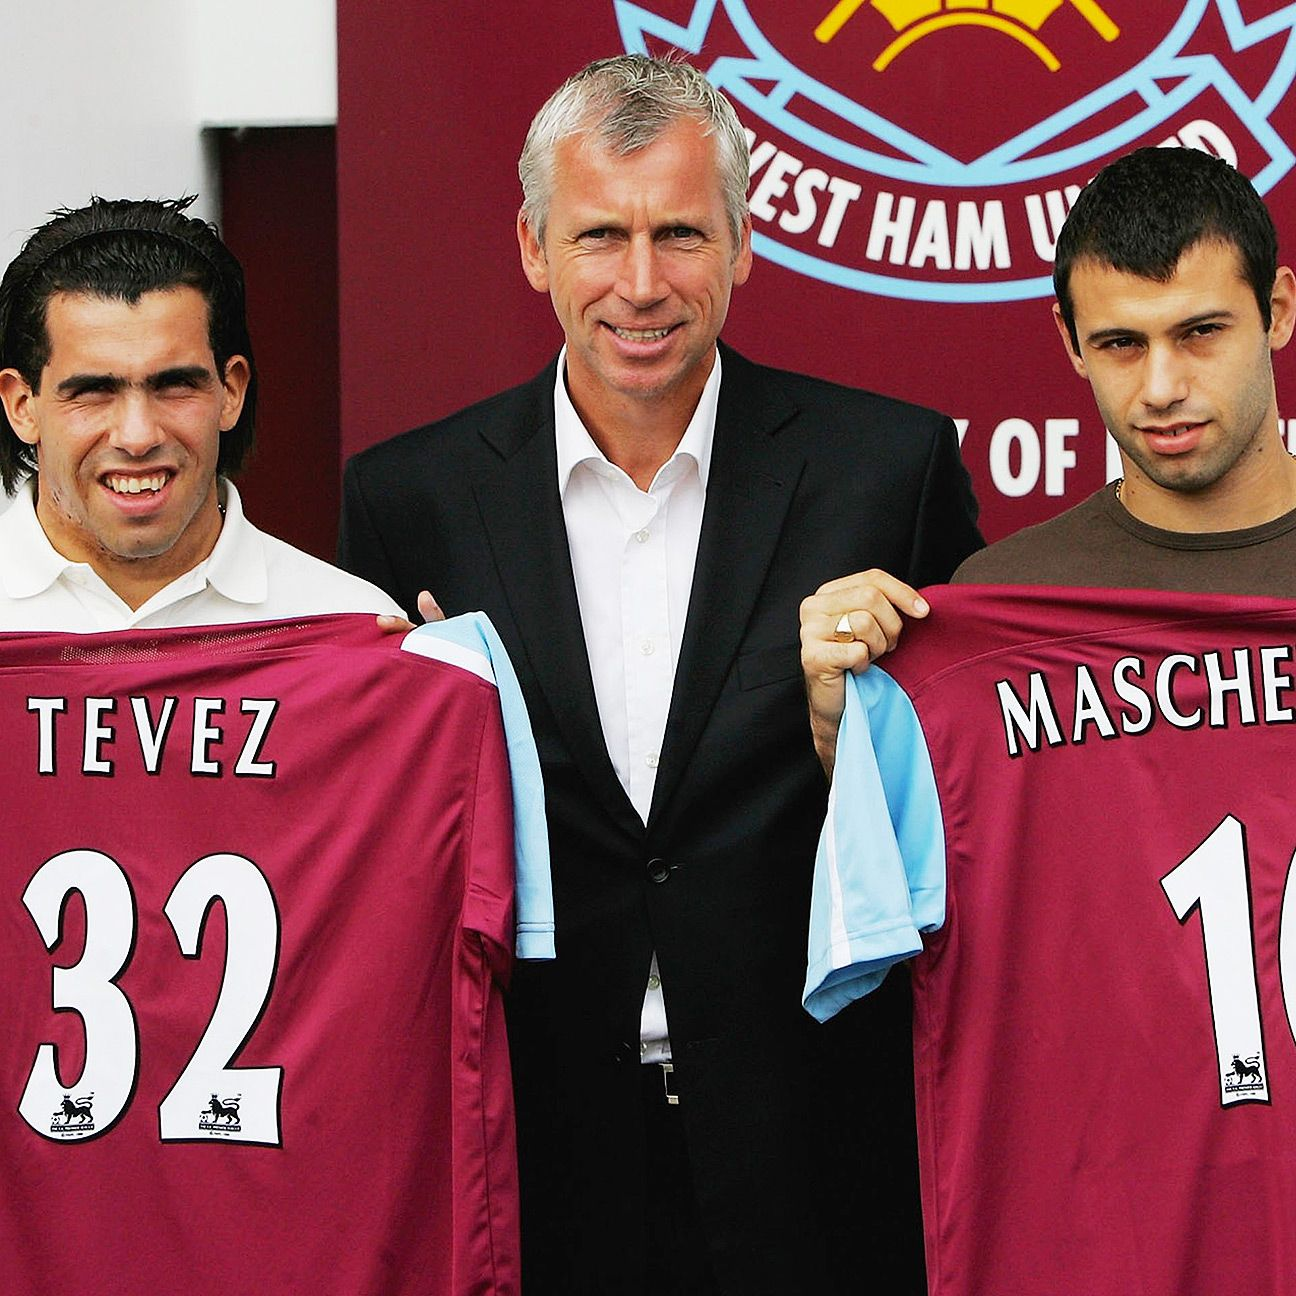 The controversial moves of Tevez and Mascherano's to West Ham began England's distrust of third-party deals.